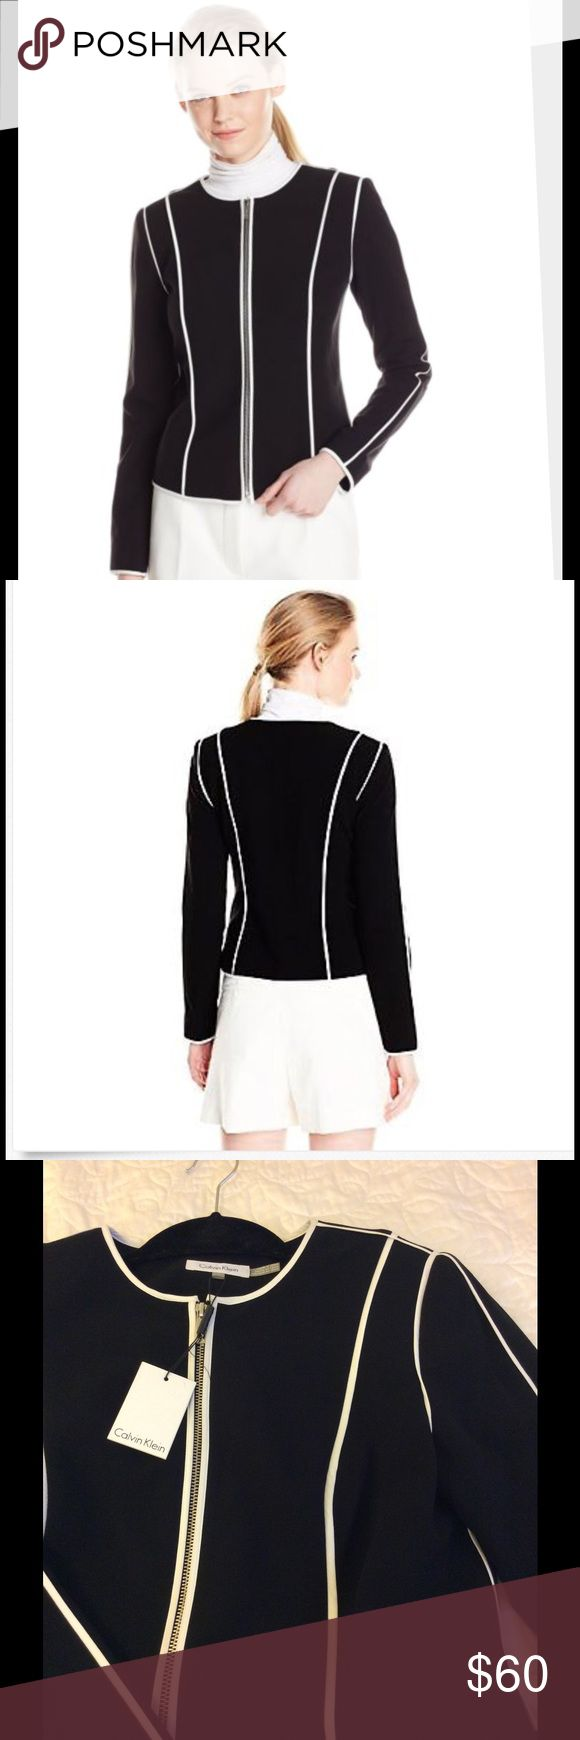 Calvin Klein Women's Zip Up Jacket with White trim New with tags. Never worn. Black and white Jacket. This is currently $129 at Macy's Calvin Klein Jackets & Coats Blazers